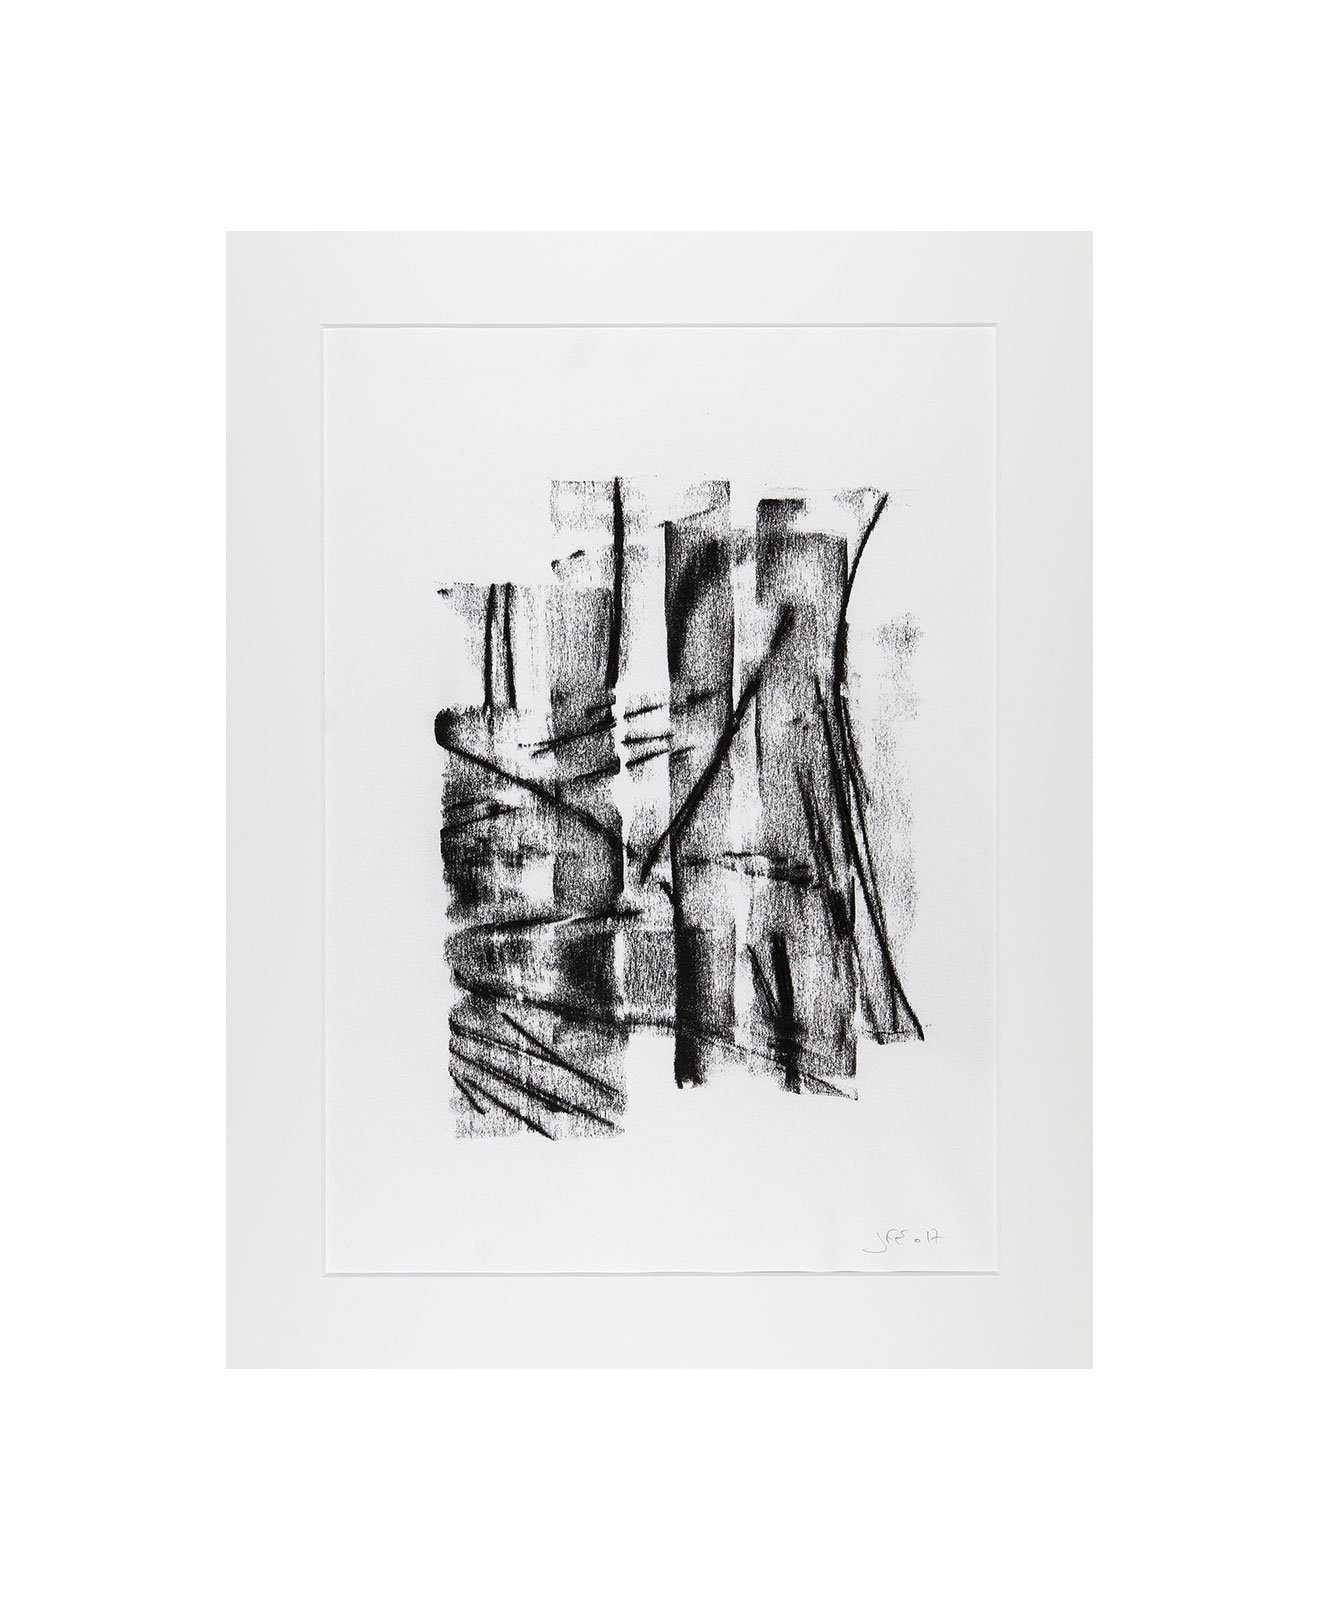 Cha 1.26, Charcoal on paper, black and white artwork, drawing, jf escande, contemporary art